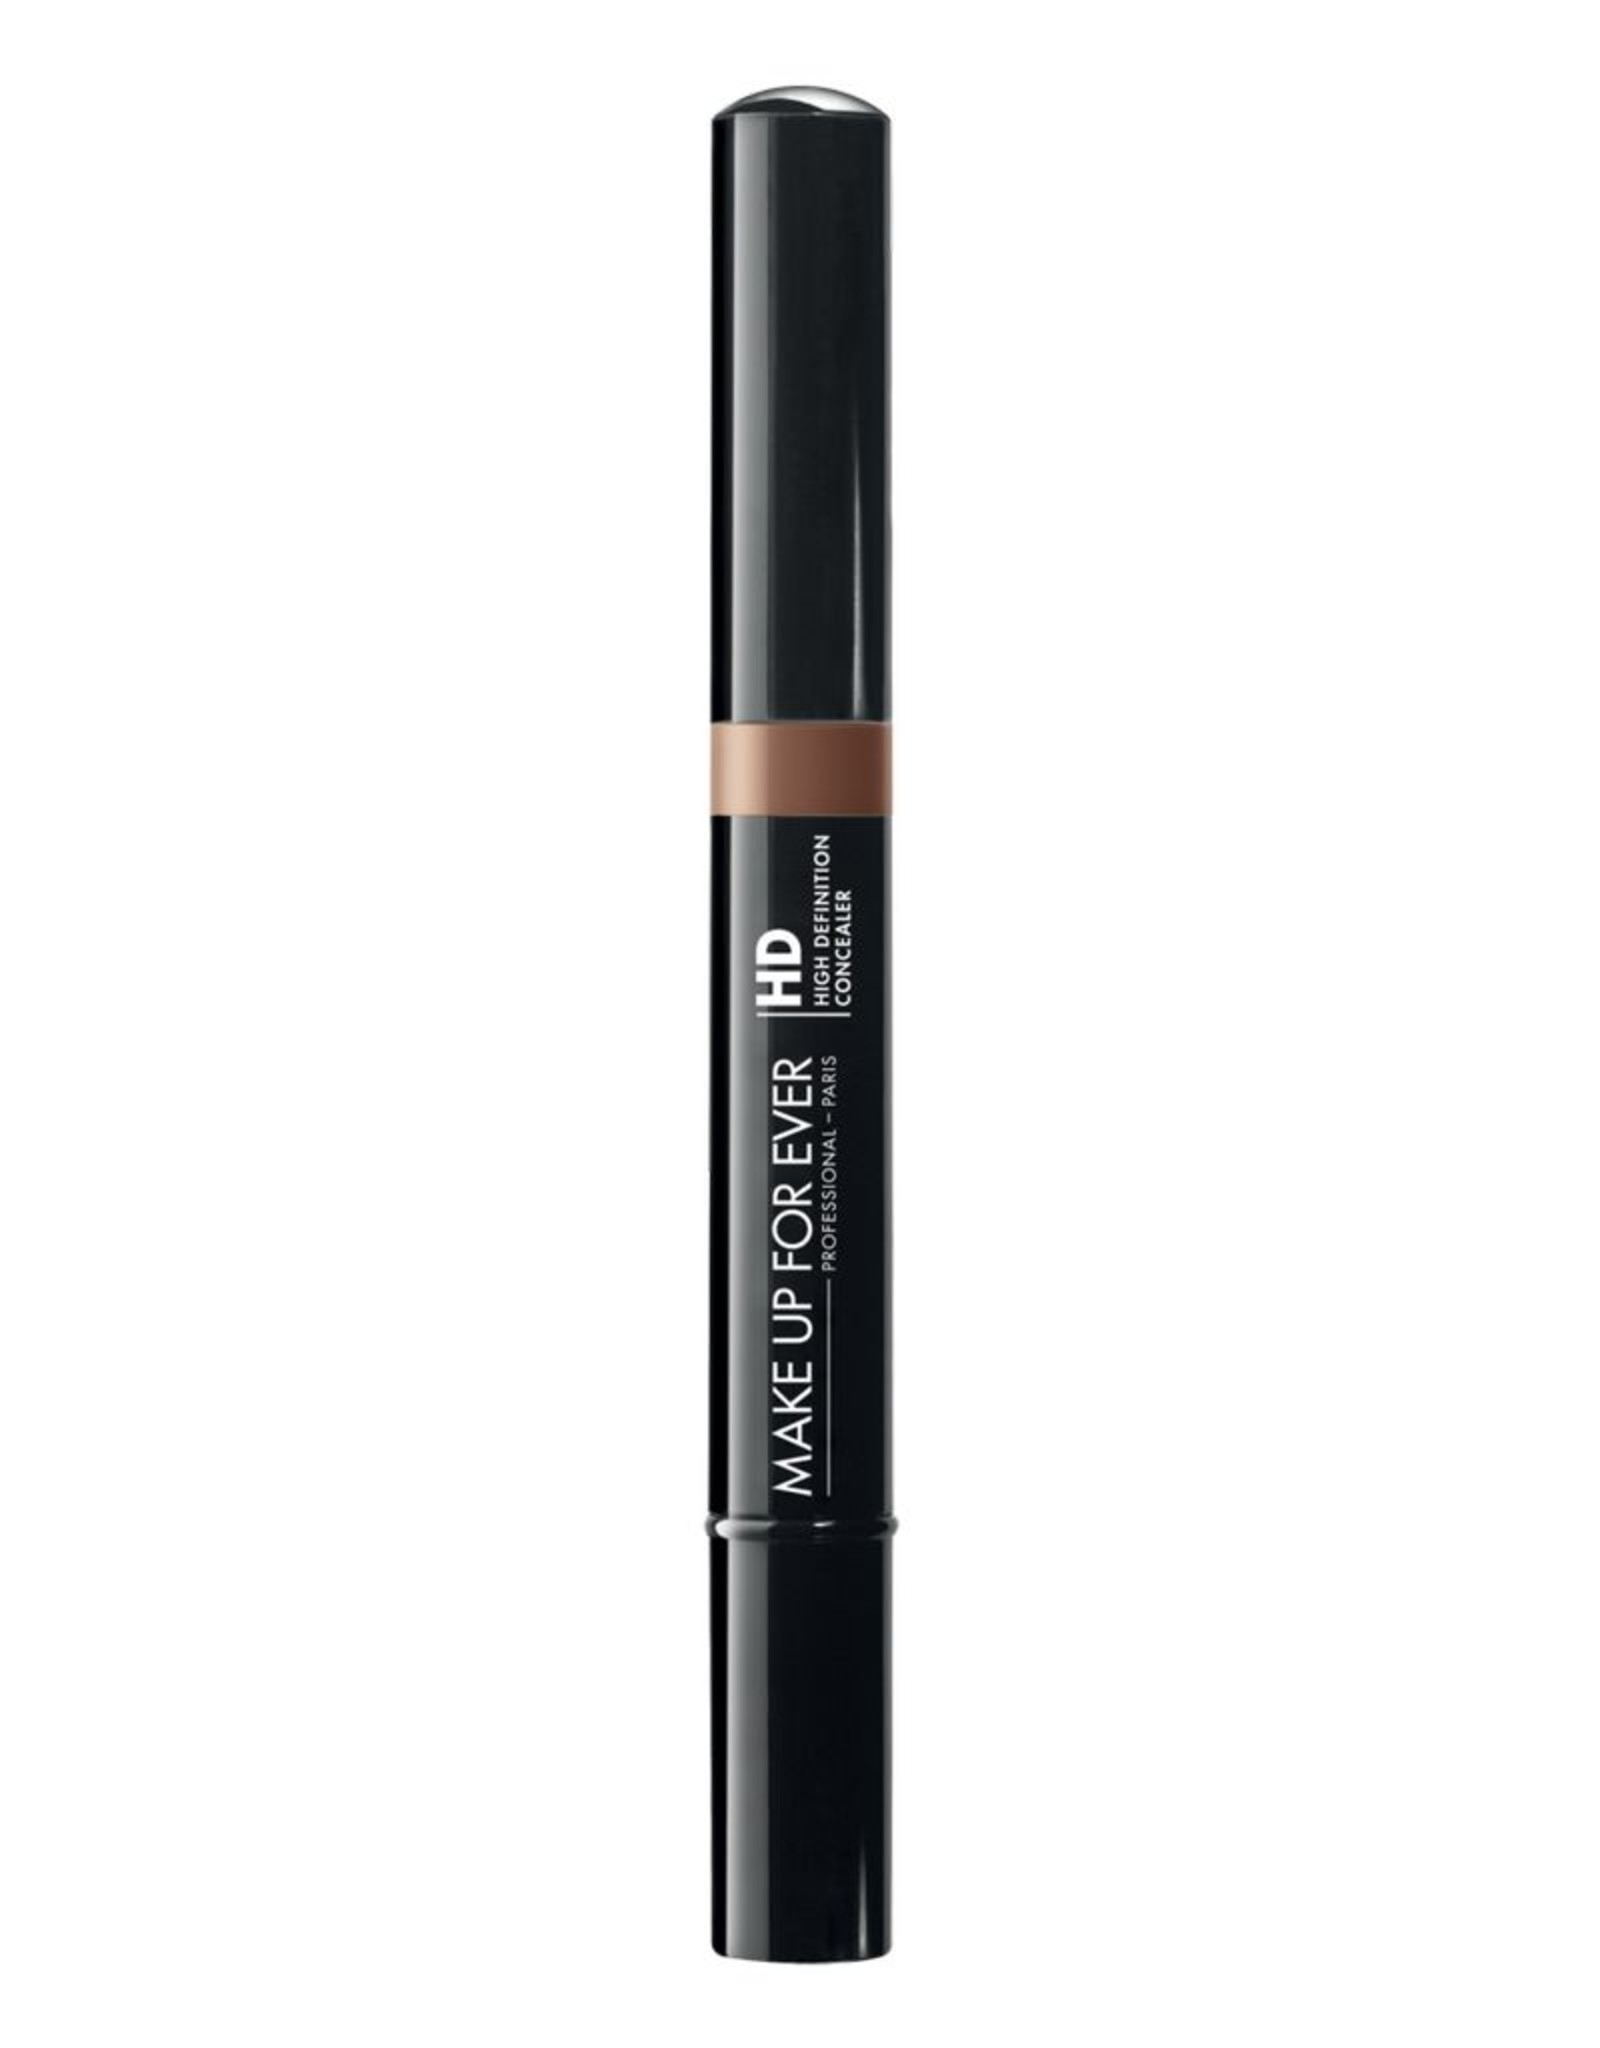 MUFE ANTICERNES HD 1.5ML #370 Ebene / ebony